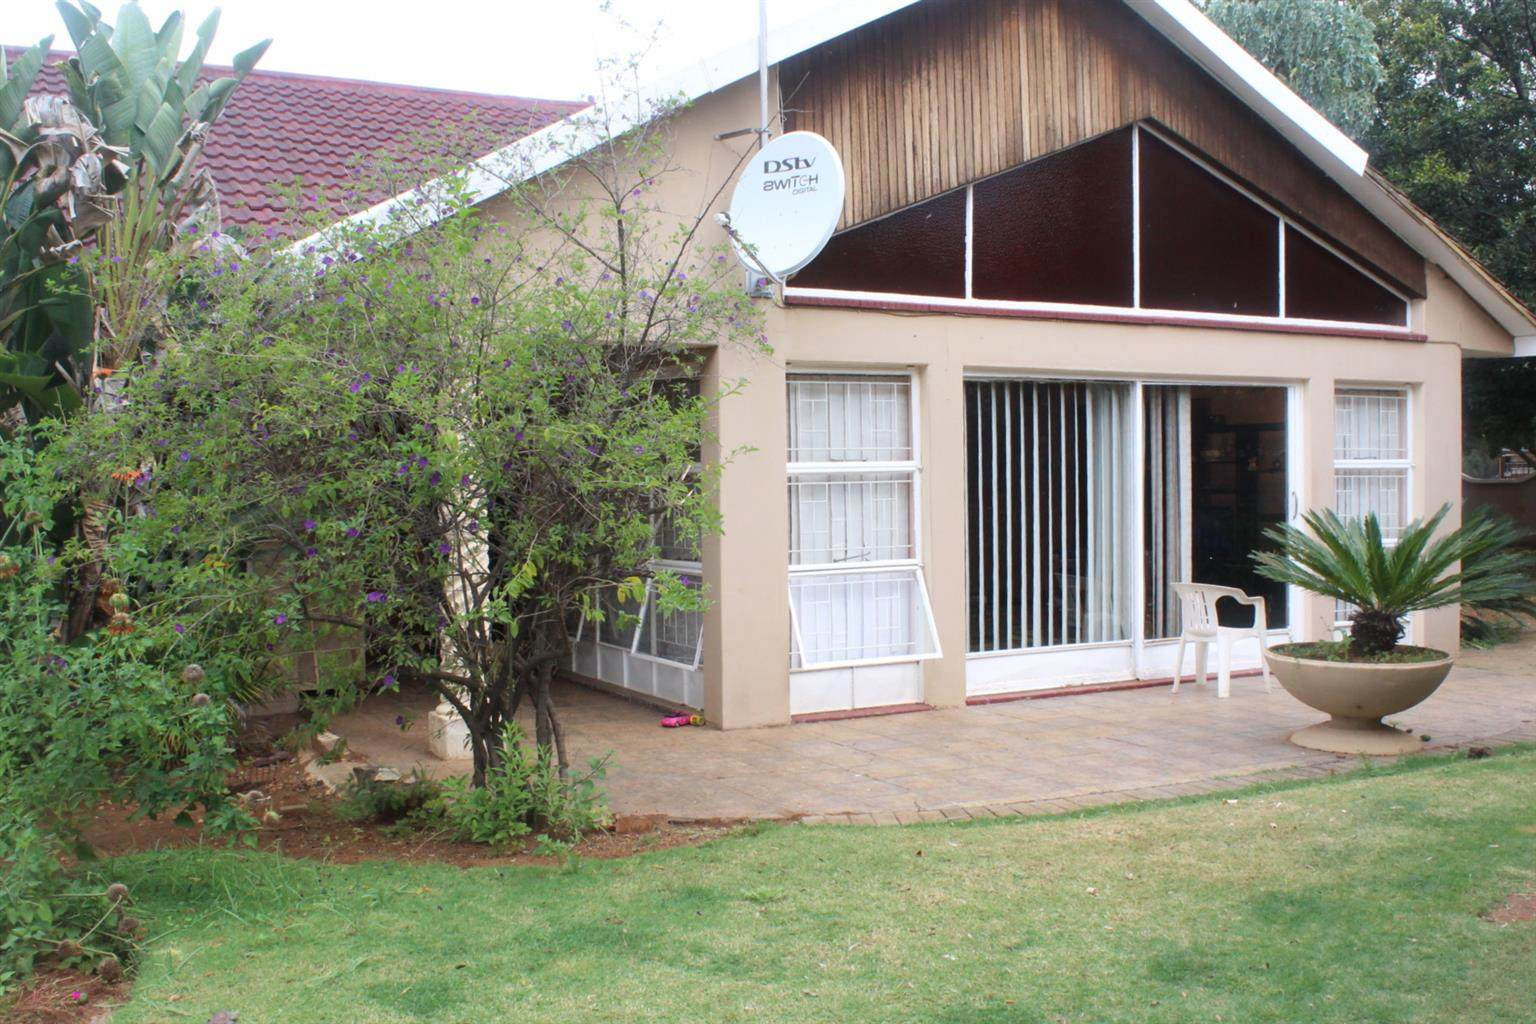 Exquisite home with big, beautiful garden for sale in Sonlandpark